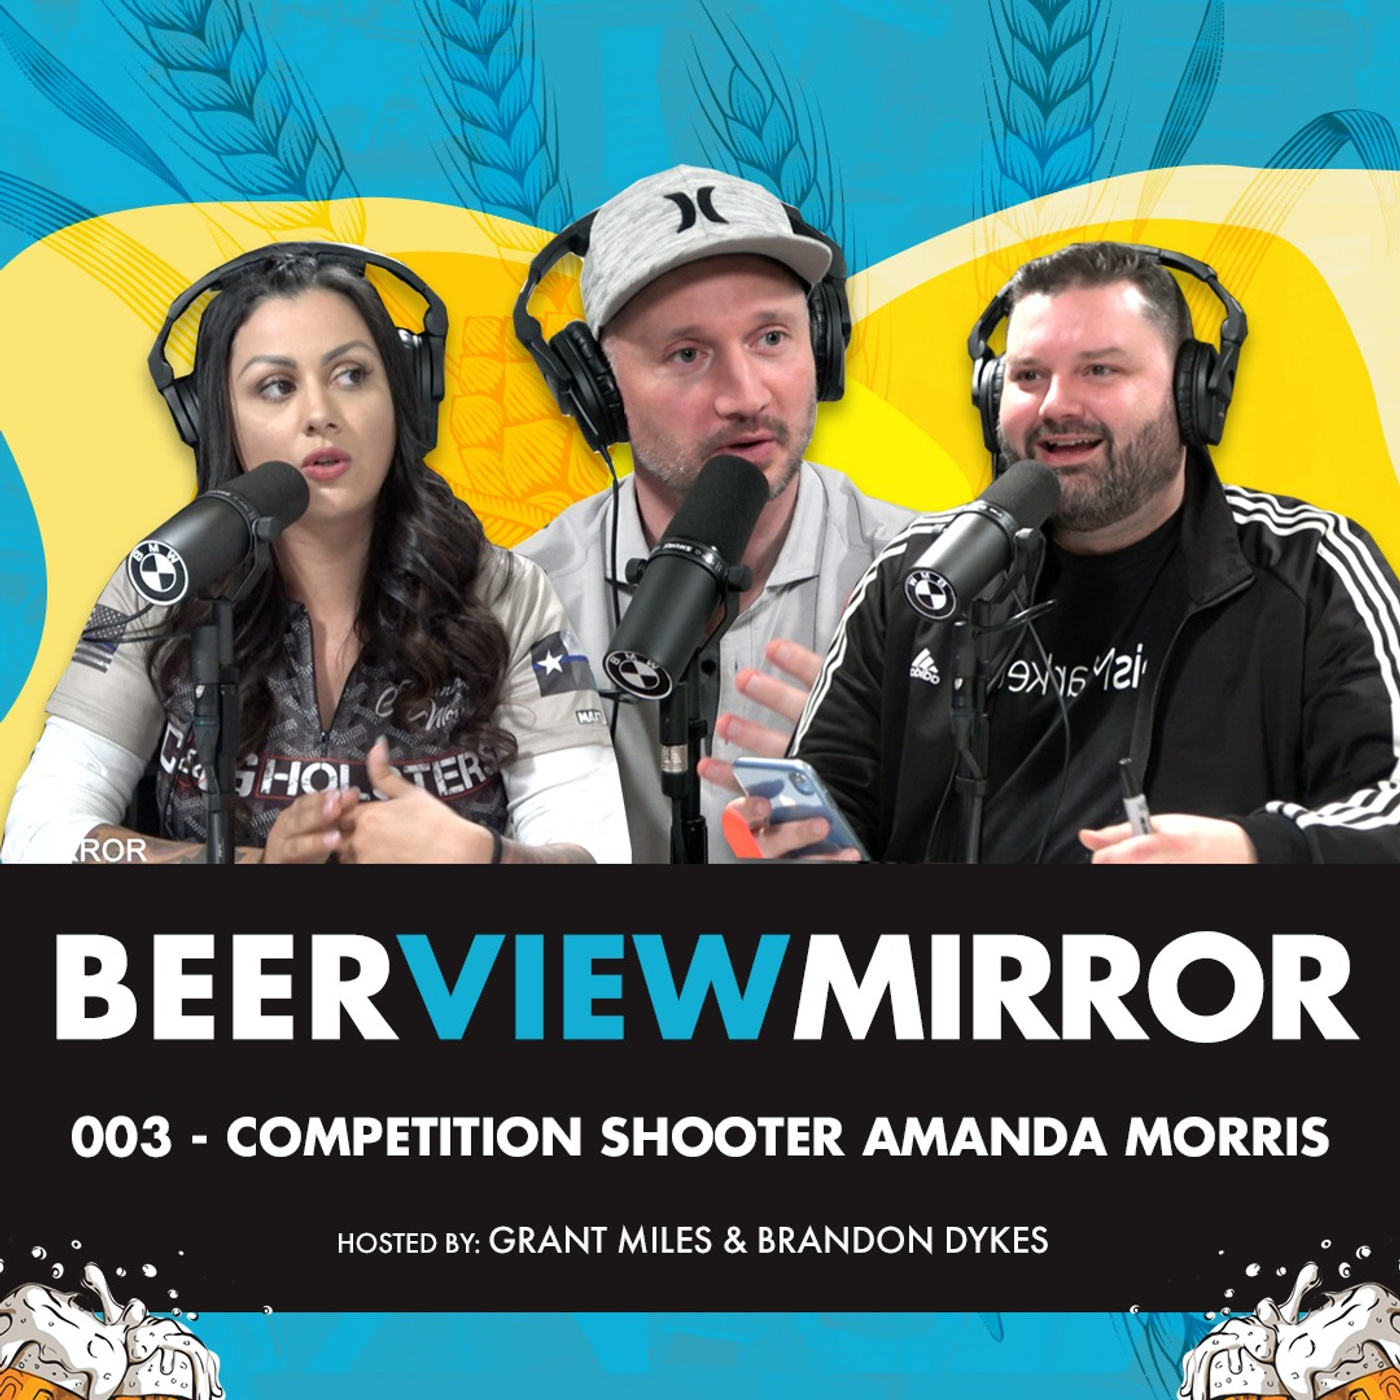 Beer View Mirror 003 Competition Shooter Amanda Morris